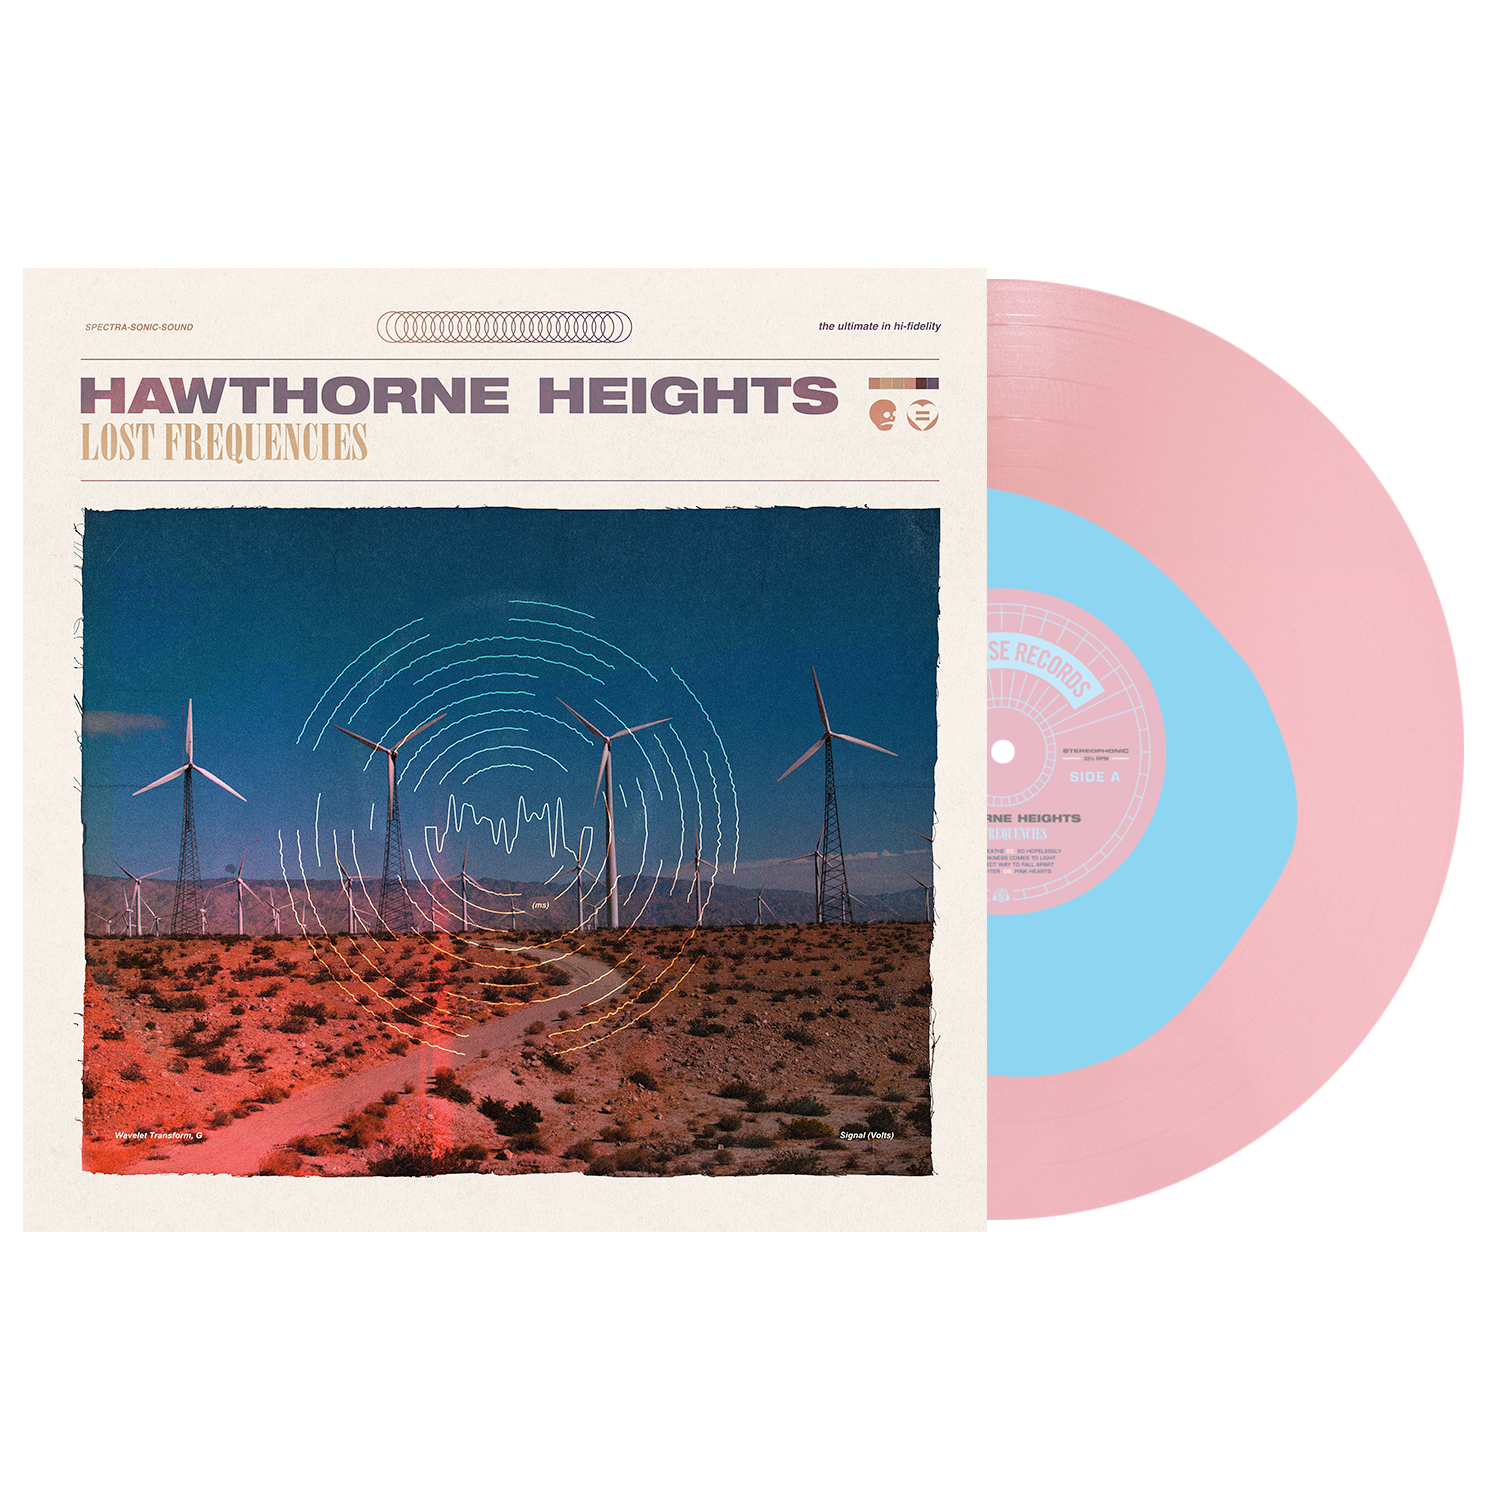 Hawthorne Heights 'Lost Frequencies' LP Var 2 (Baby Blue in Baby Pink Color in Color)